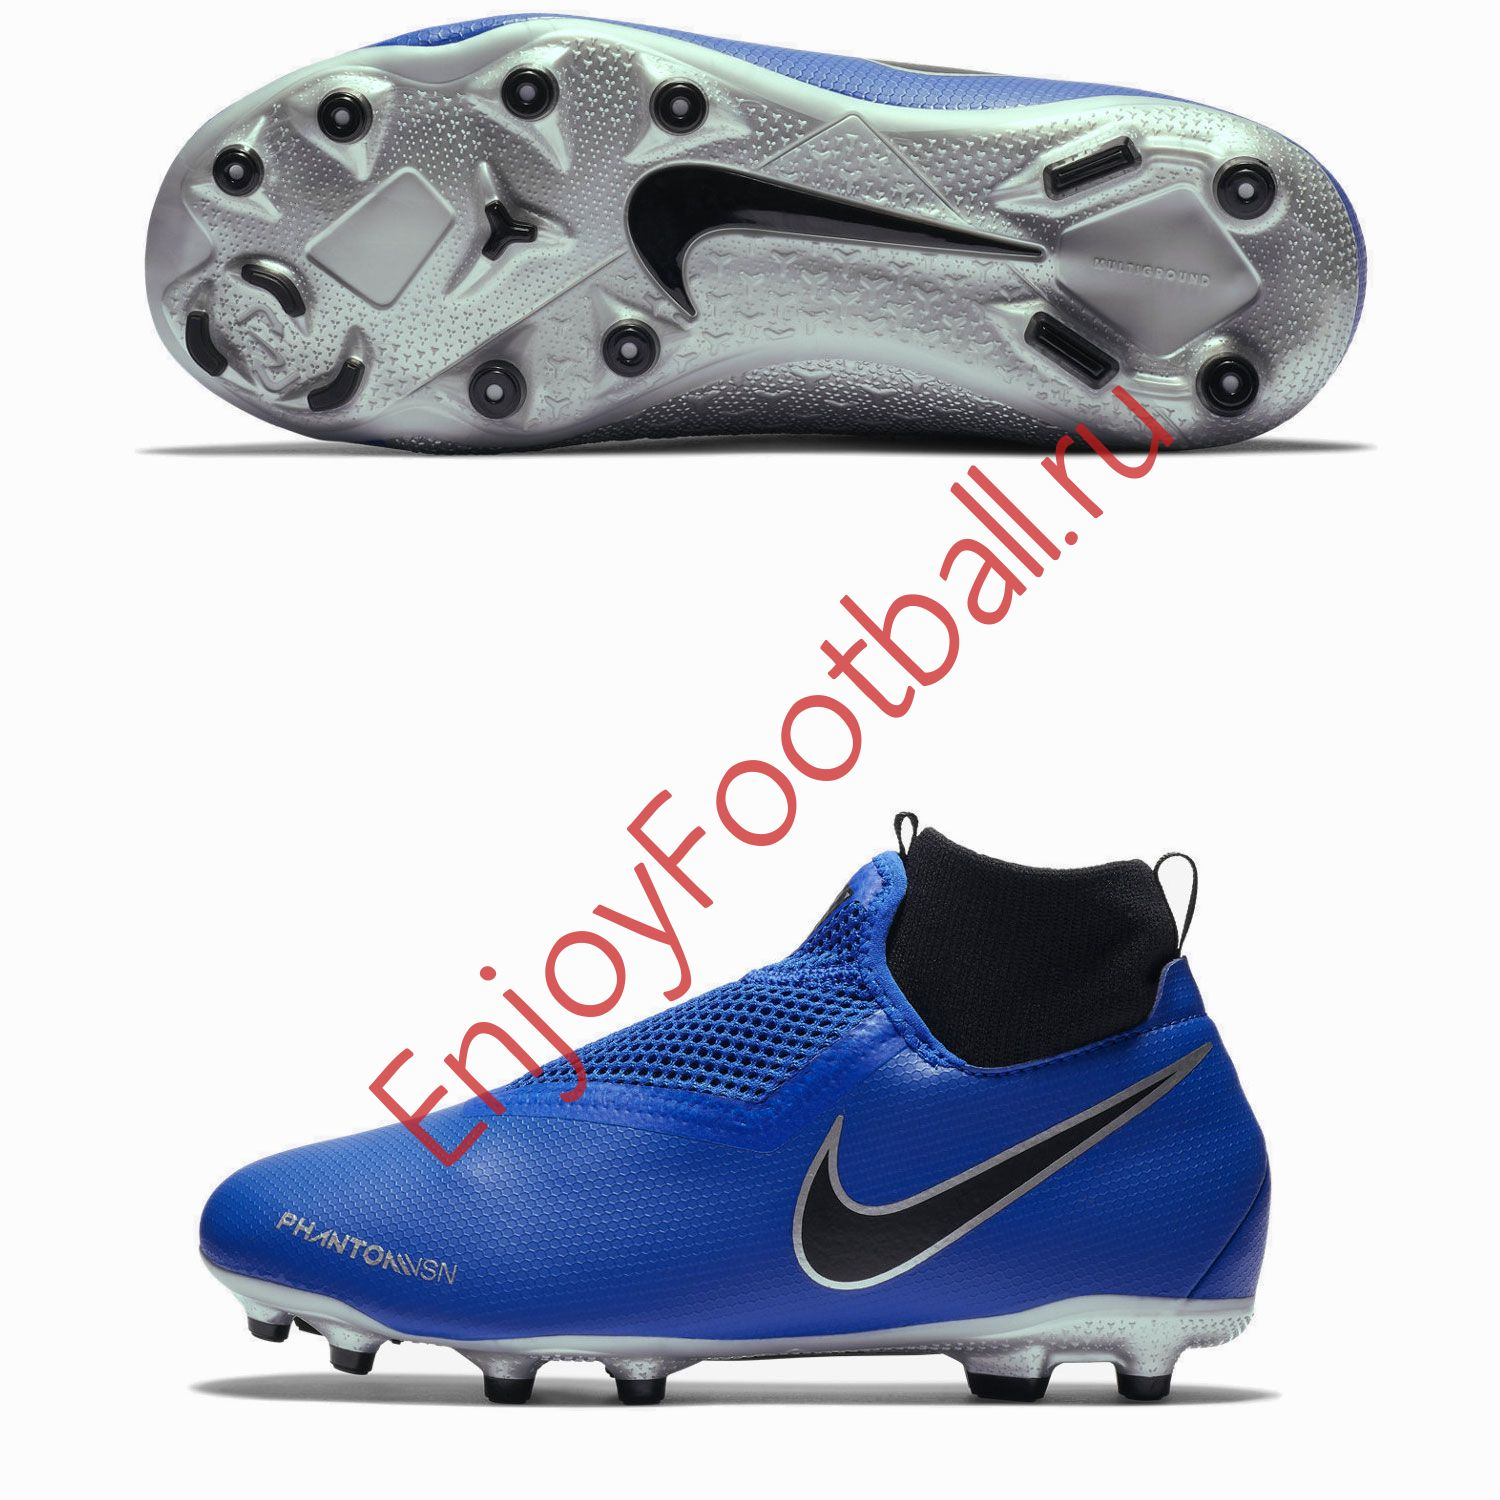 49bab8eb3c72 Детские бутсы NIKE PHANTOM VSN ACADEMY DF FG MG AO3287-400 JR купить ...